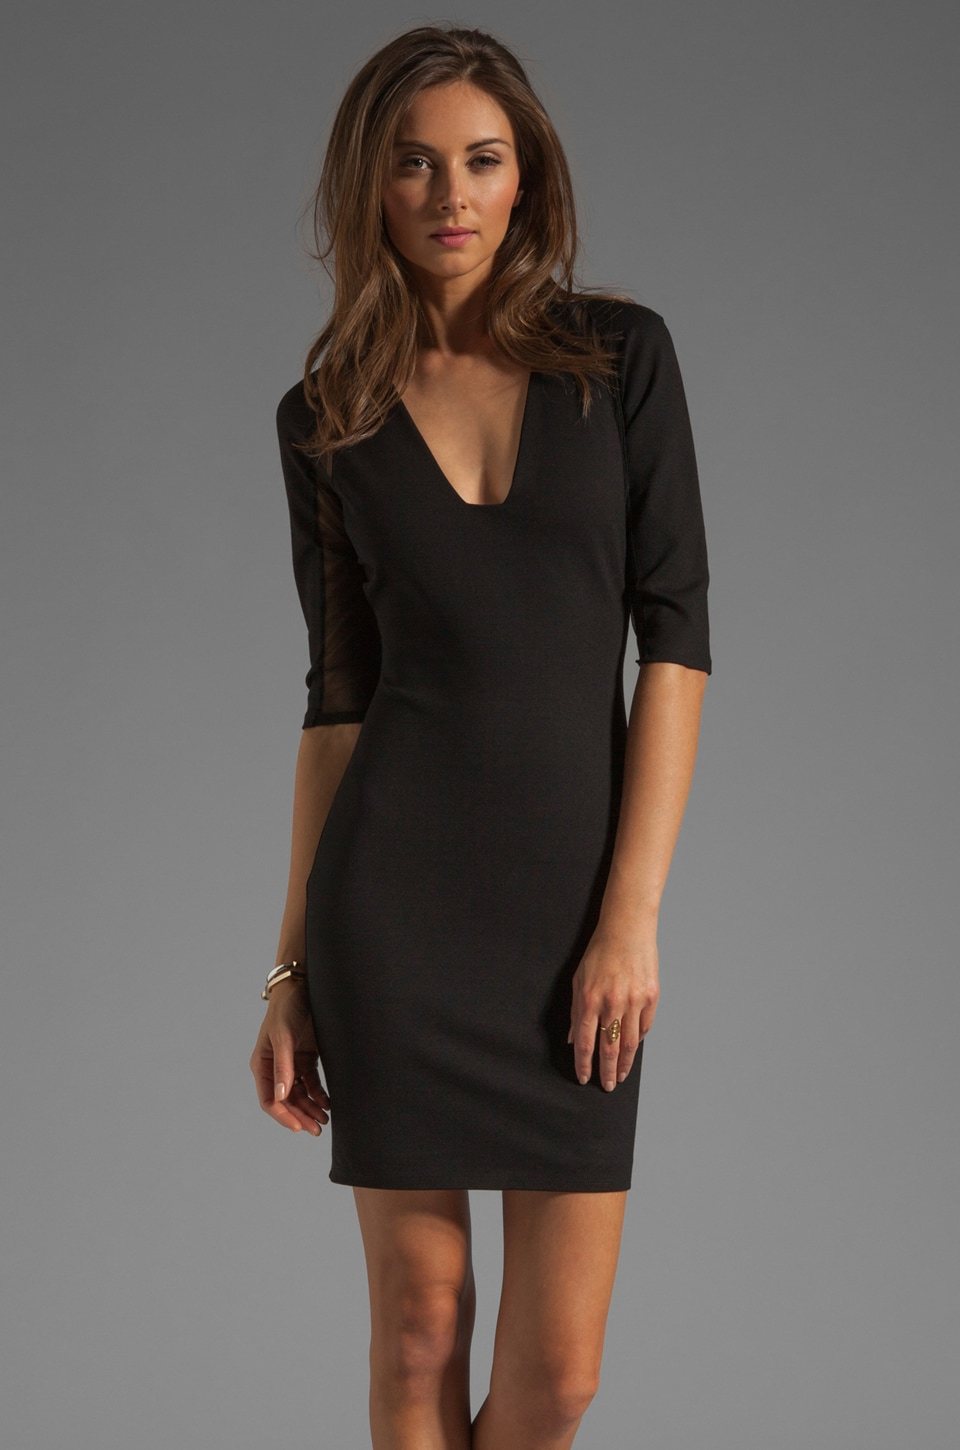 Mason by Michelle Mason Mesh Inset Plunge Neck Dress in Black